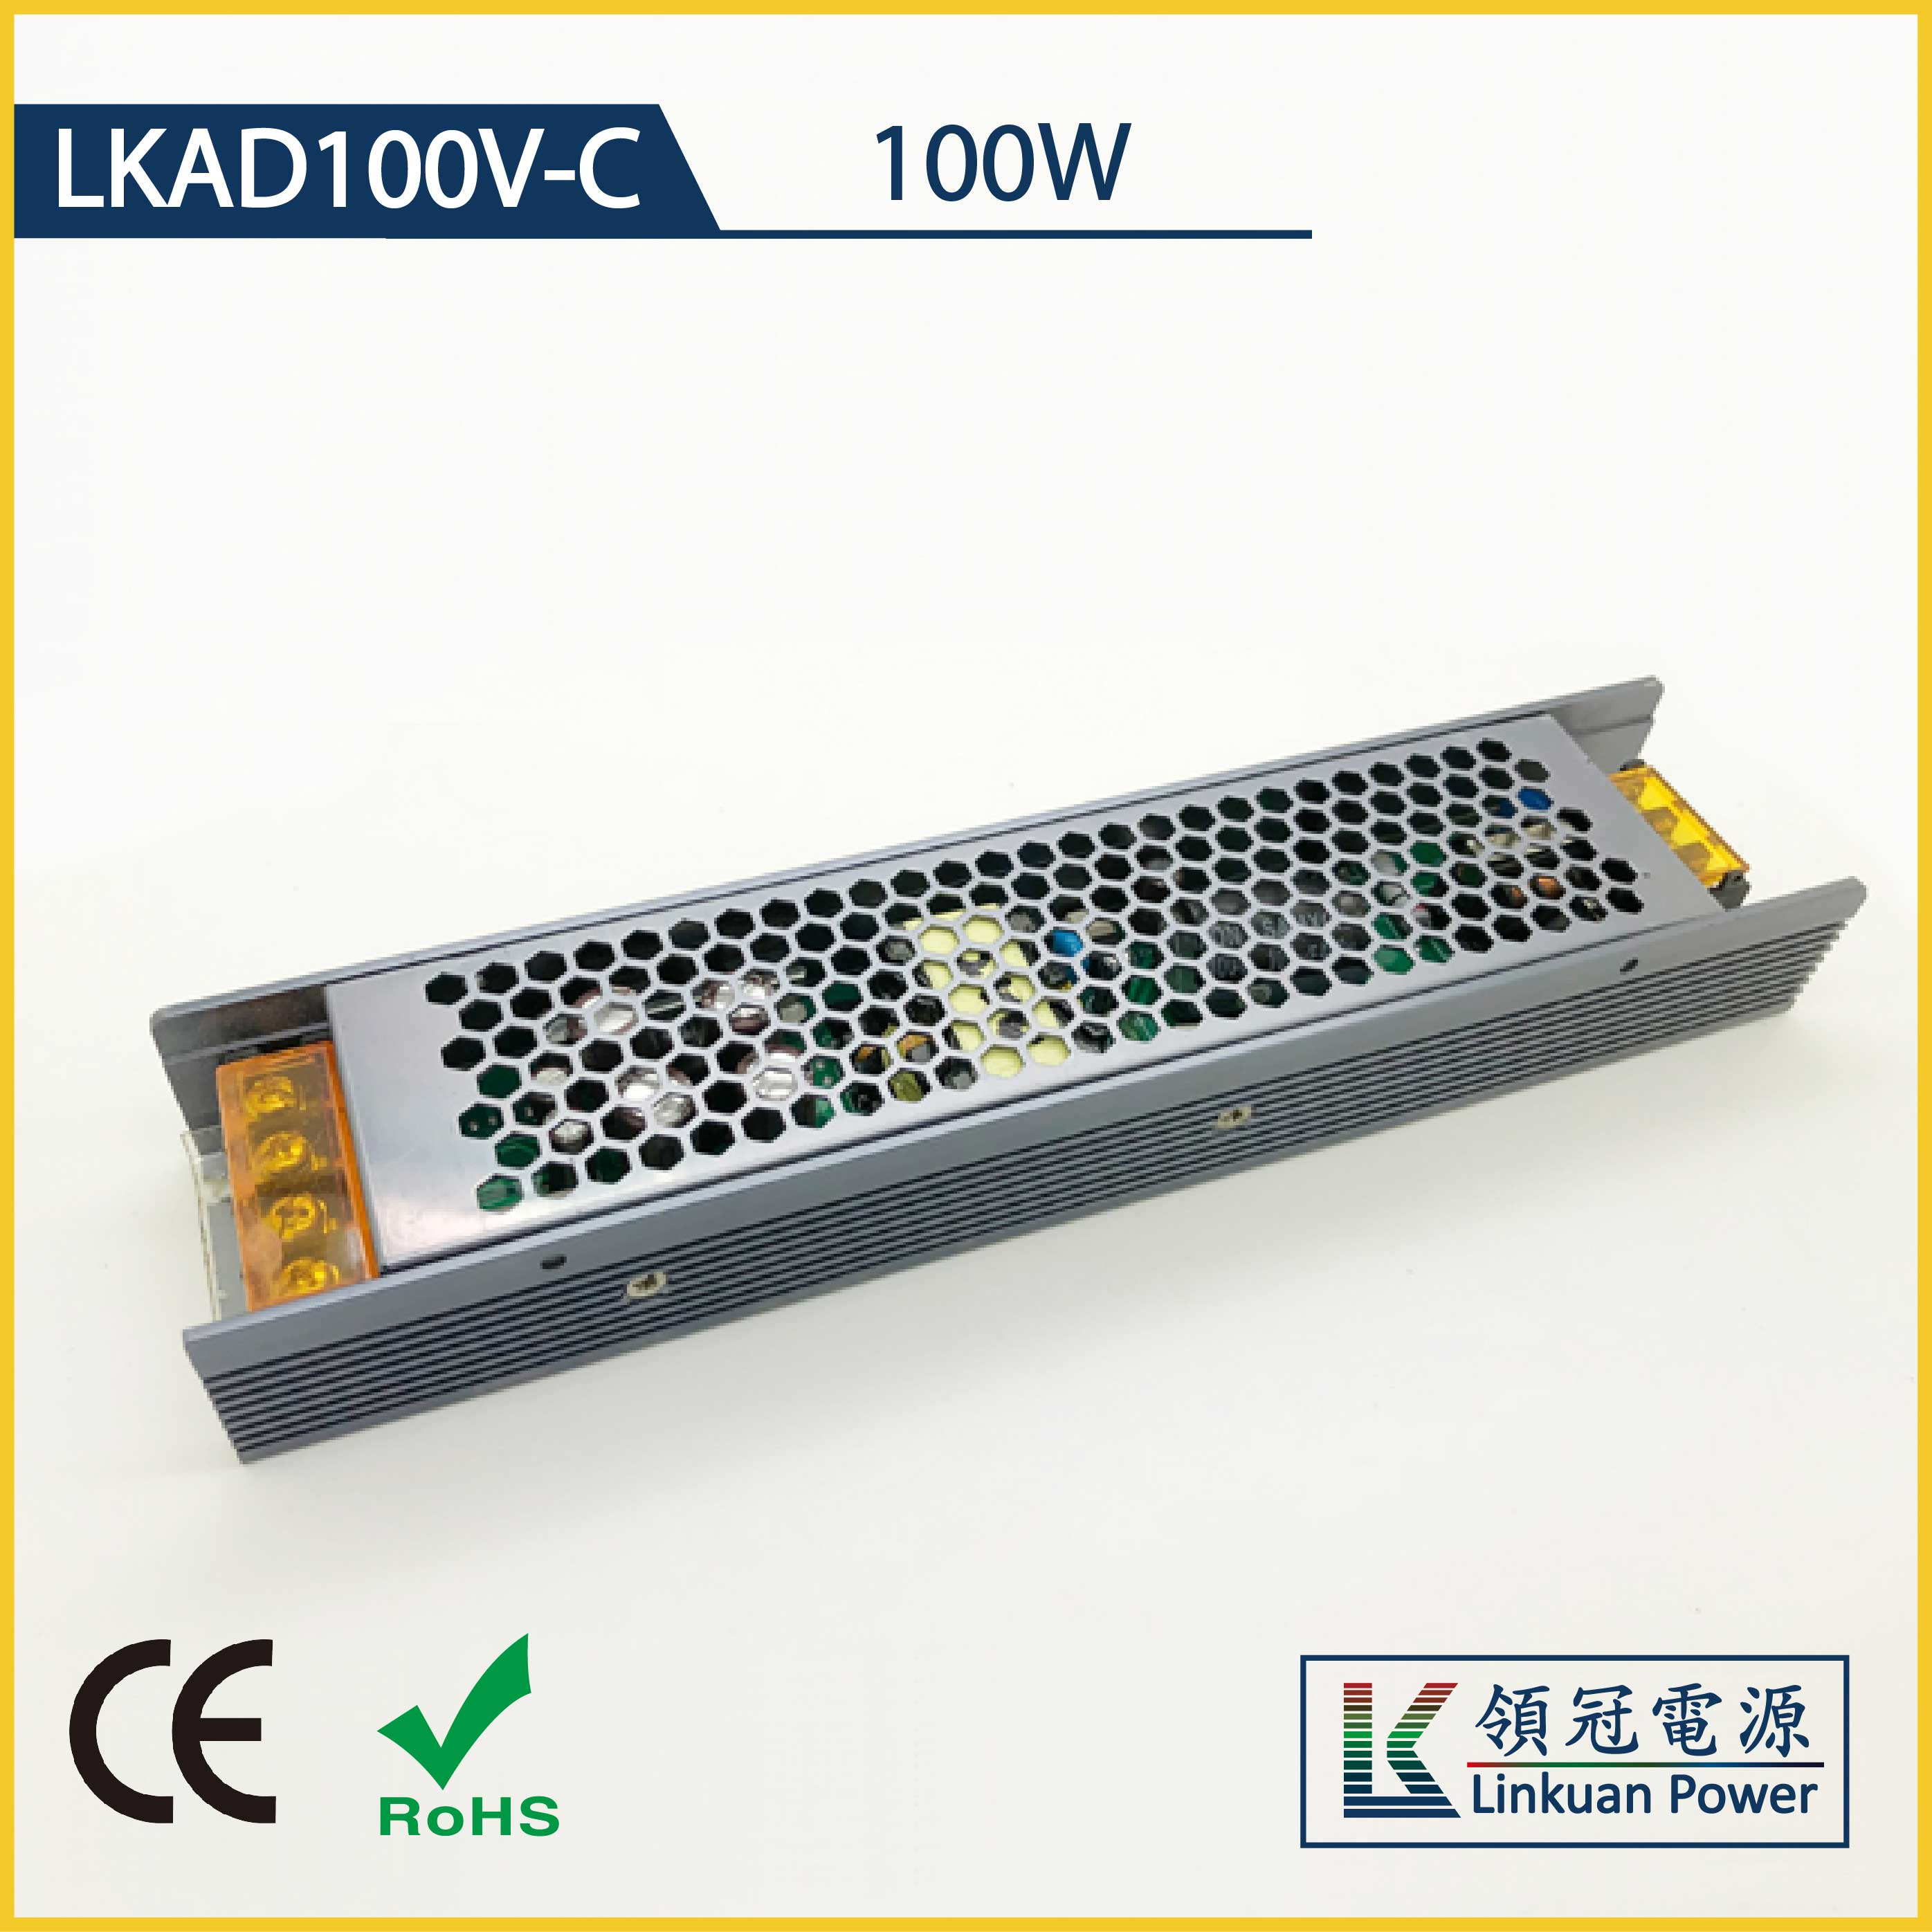 LKAD100V-C 100W 12/24V 8000/4000mA 0-10V Dimming LED drivers